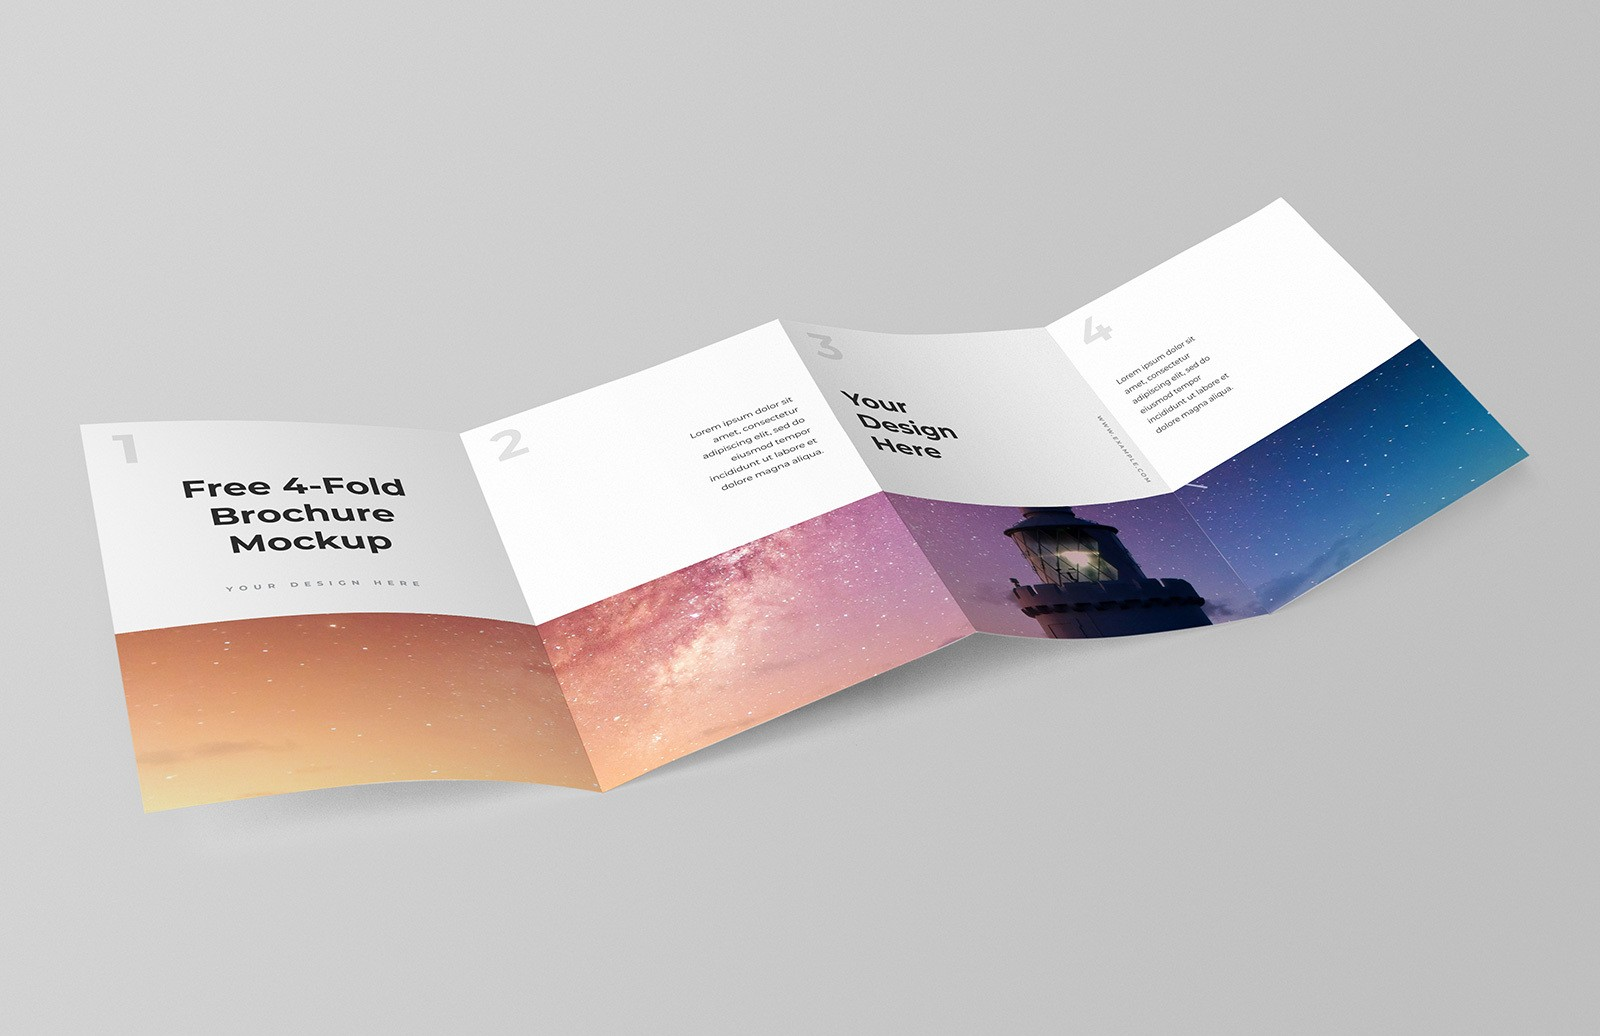 Free 4 Fold Brochure Mockup Preview 1